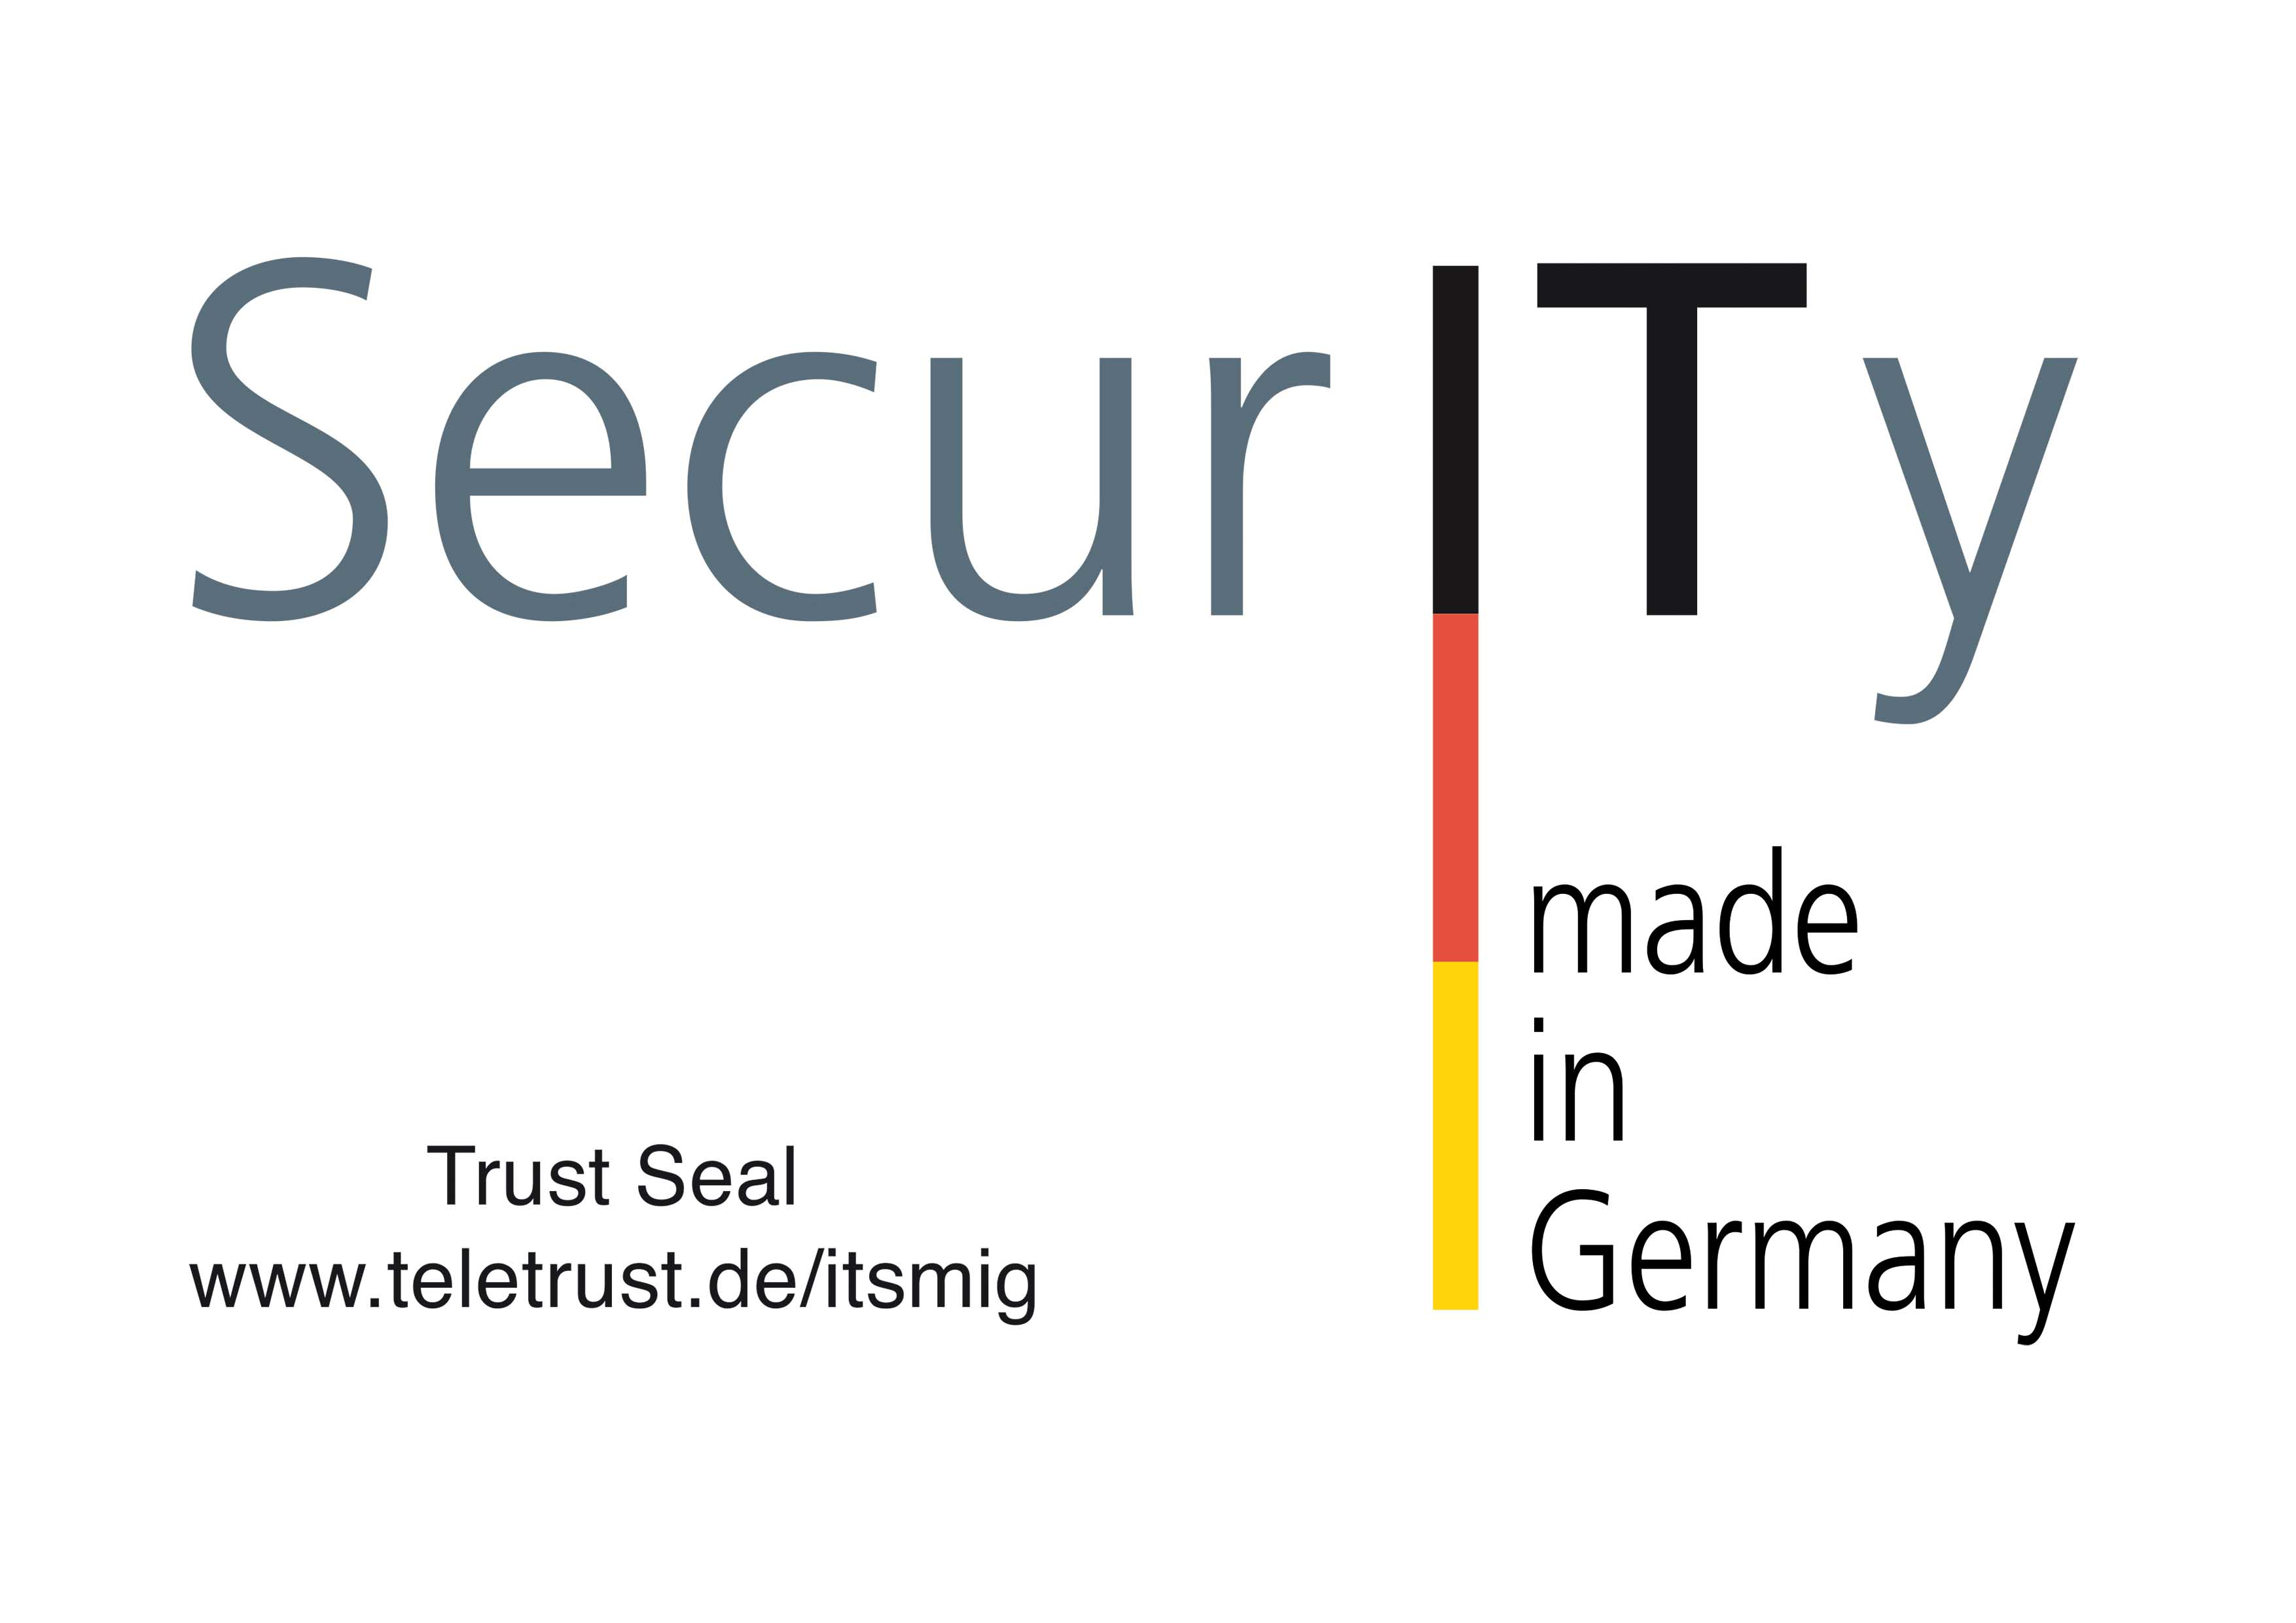 Security made in Germany